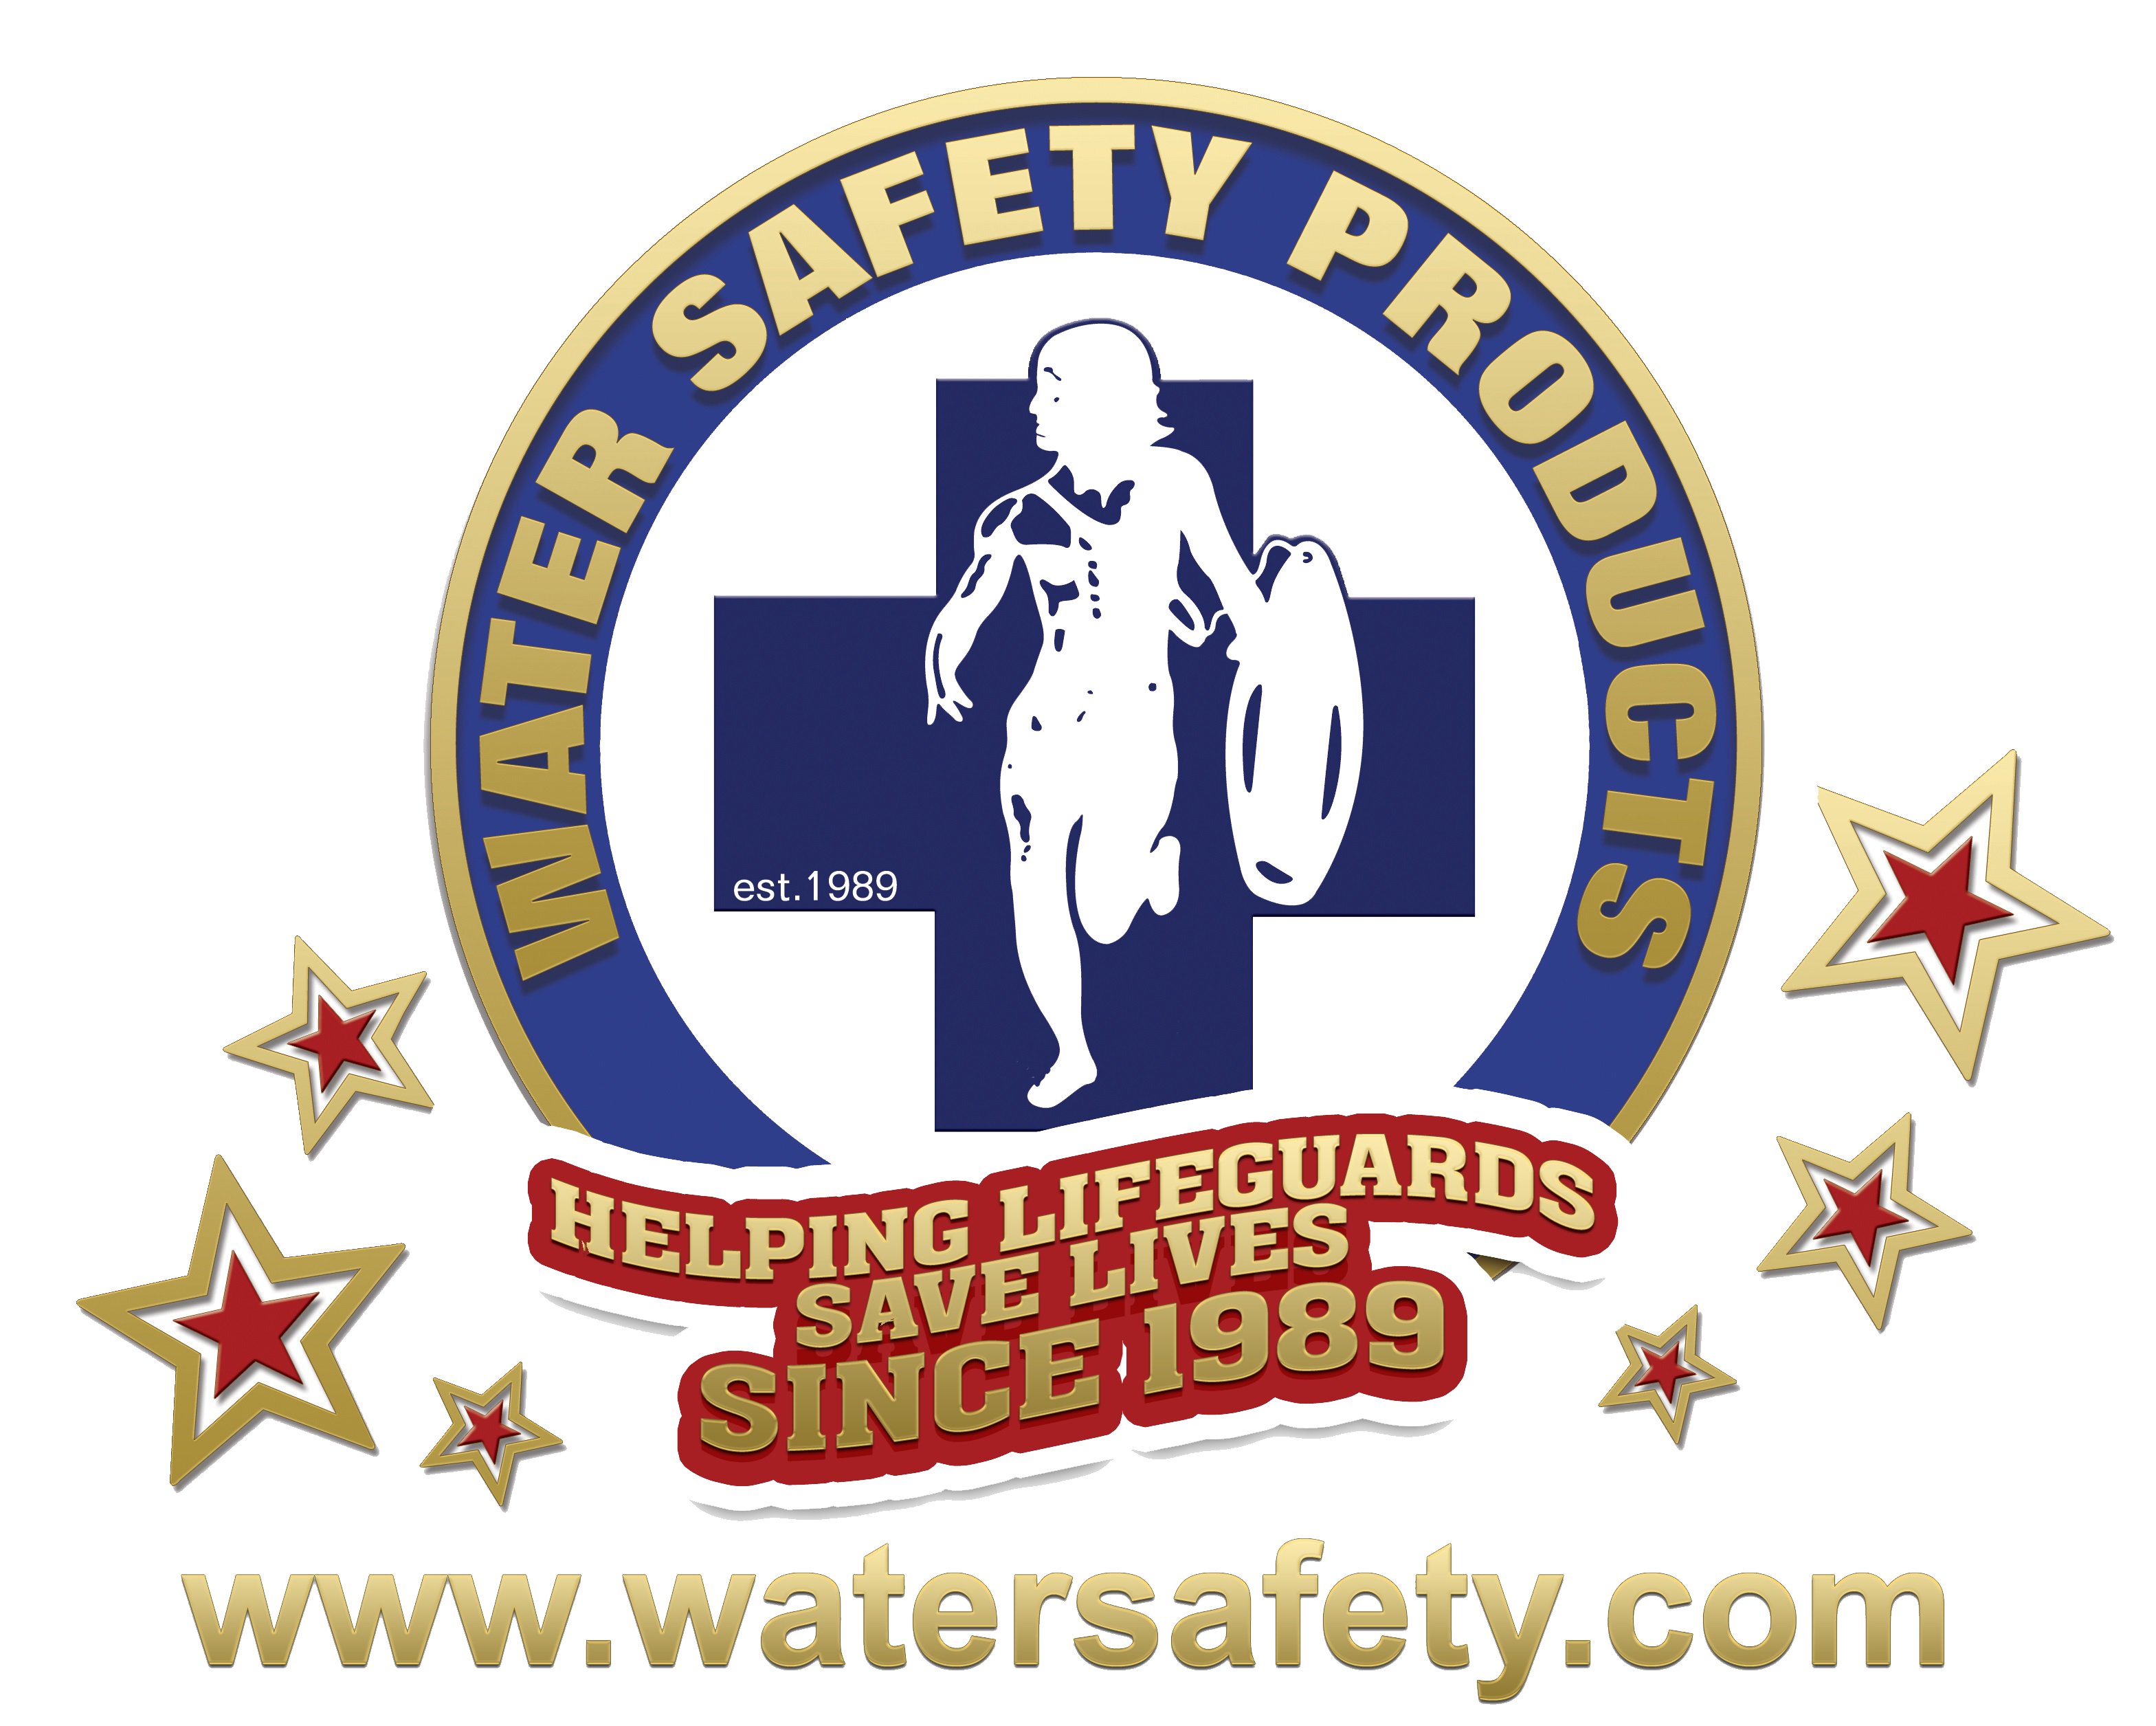 Water Safety Products